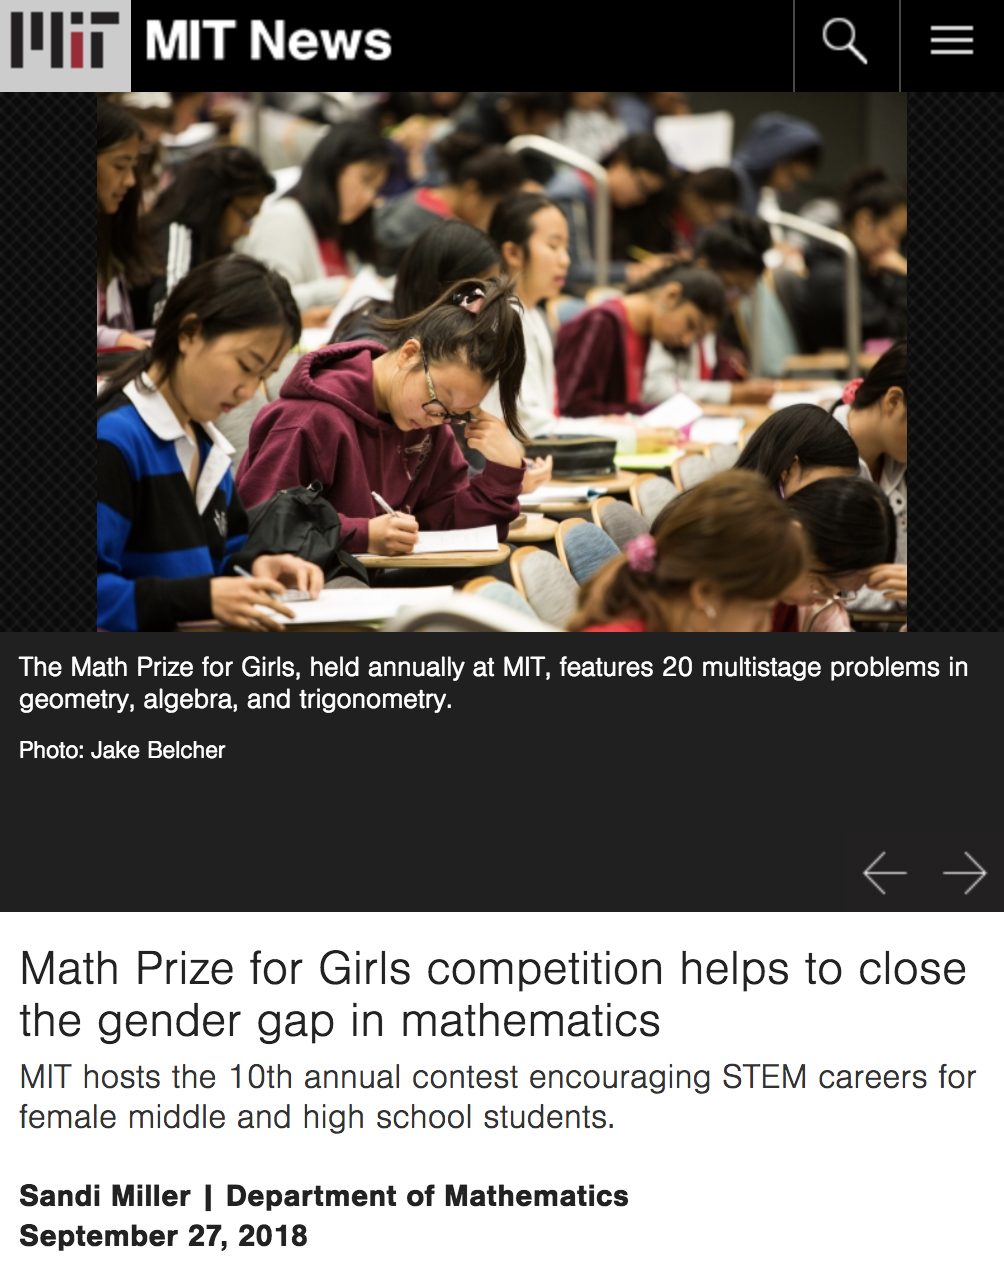 Math Prize for Girls competition helps to close the gender gap in mathematics